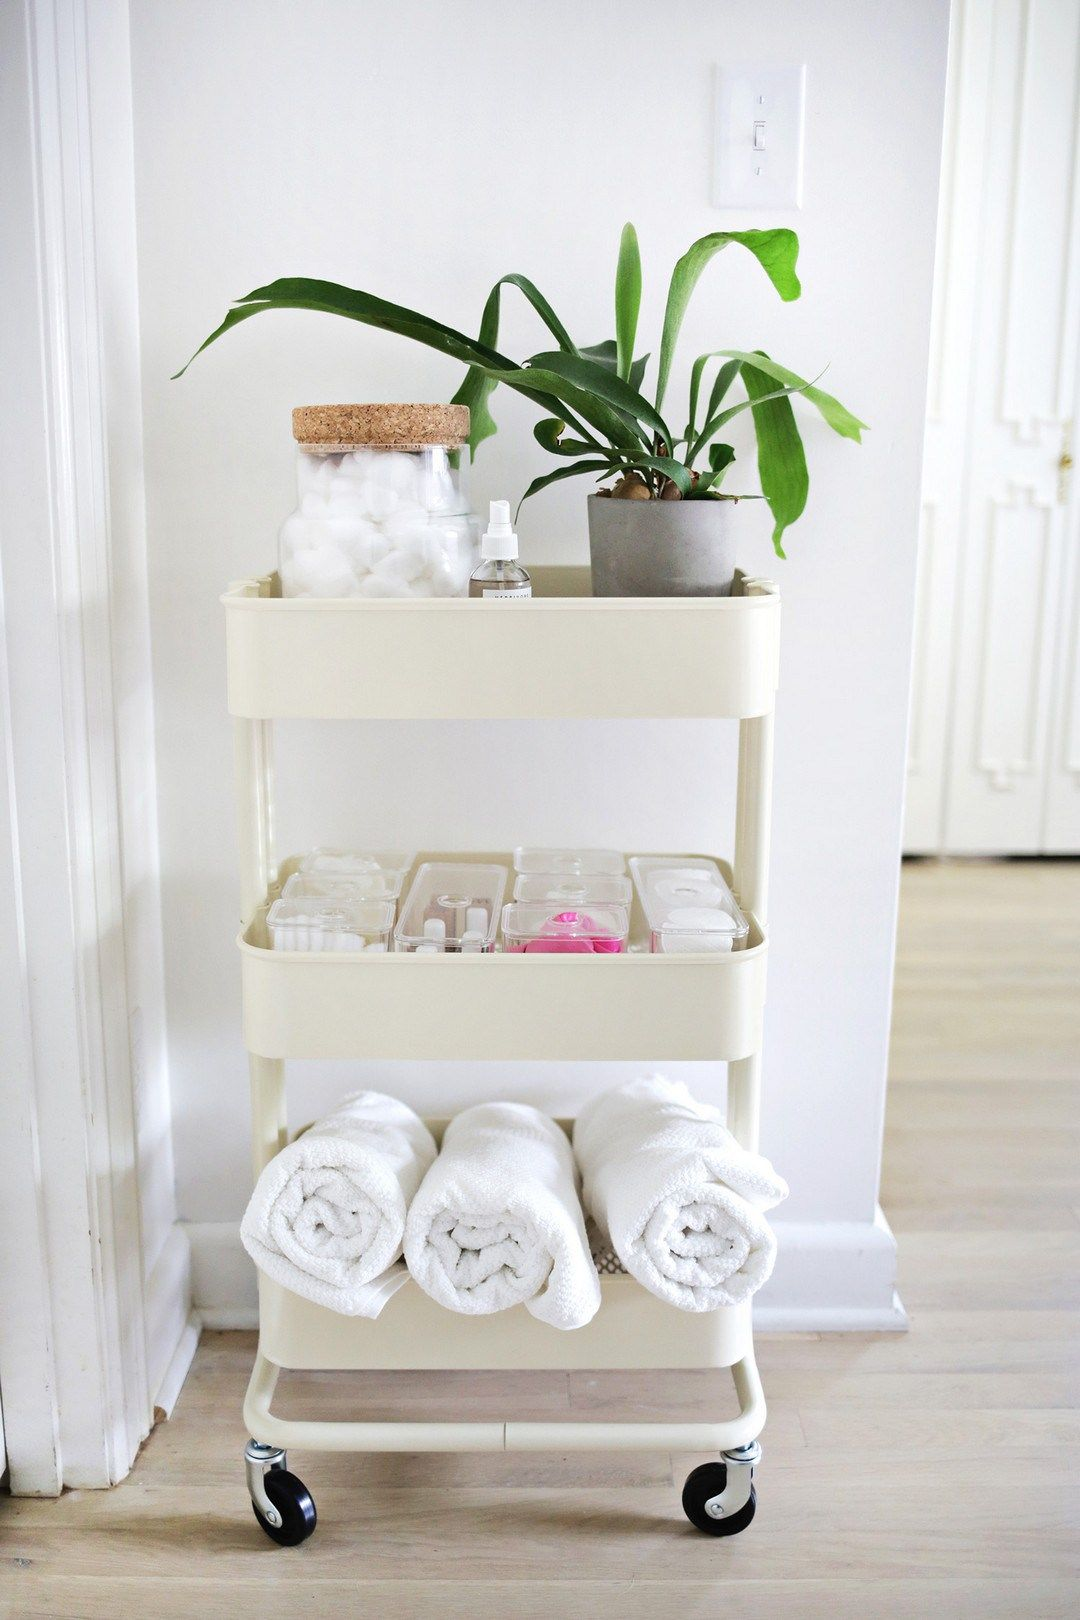 Quick And Easy Bathroom Storage And Organization Tips (2